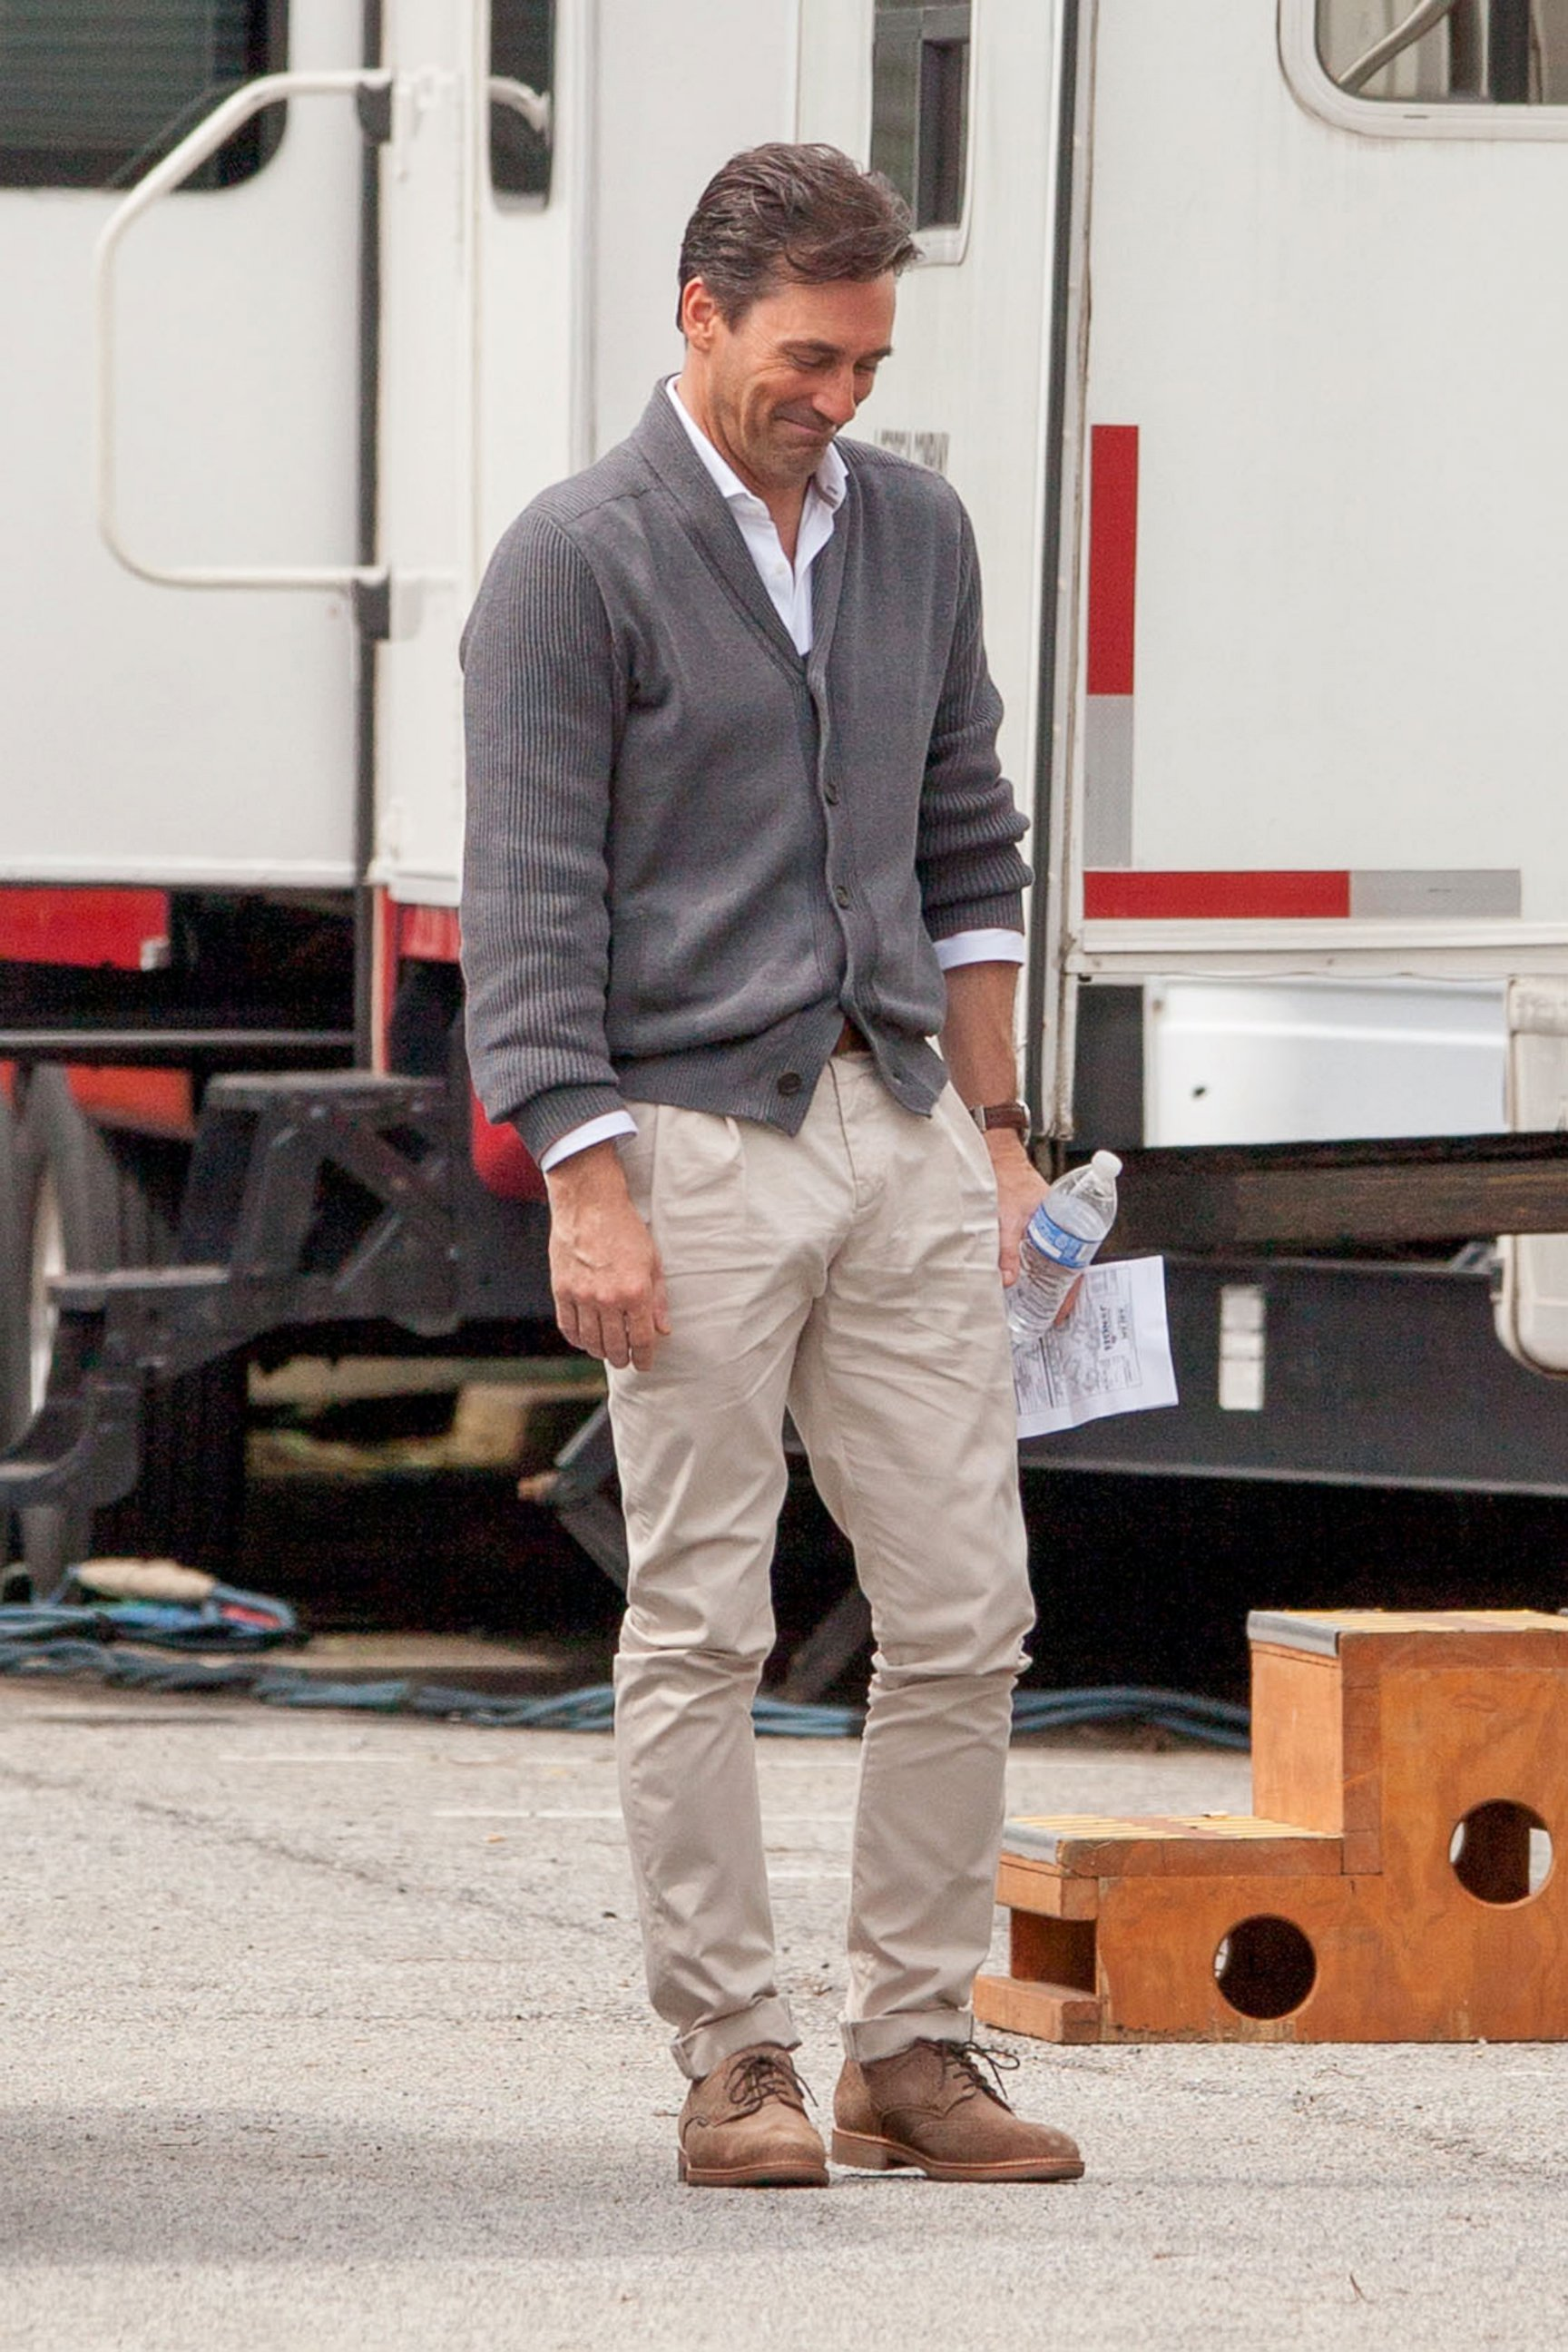 Jon Hamm Goes Clean-Shaven for Keeping Up With the Joneses